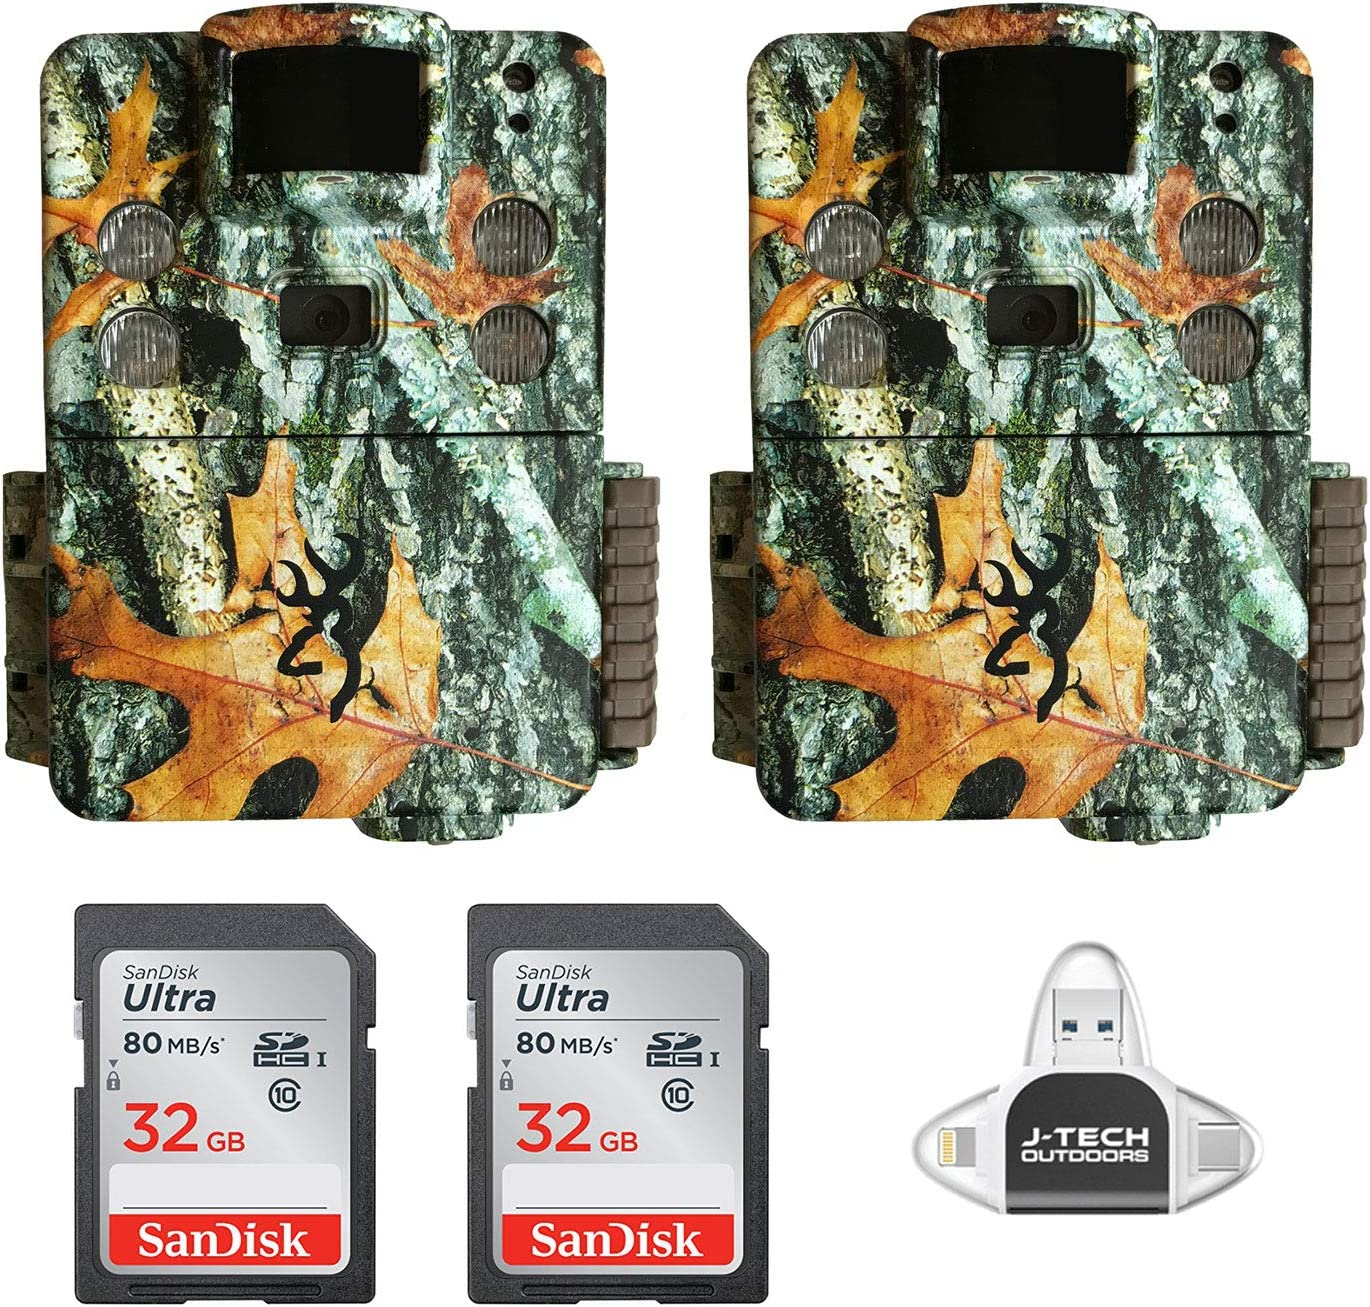 (2) Browning Strike Force HD PRO X Trail Game Cameras (20MP) with 32GB Memory Cards and J-TECH iPhone/iPad/Android USB Memory Card Reader | BTC5HDPX